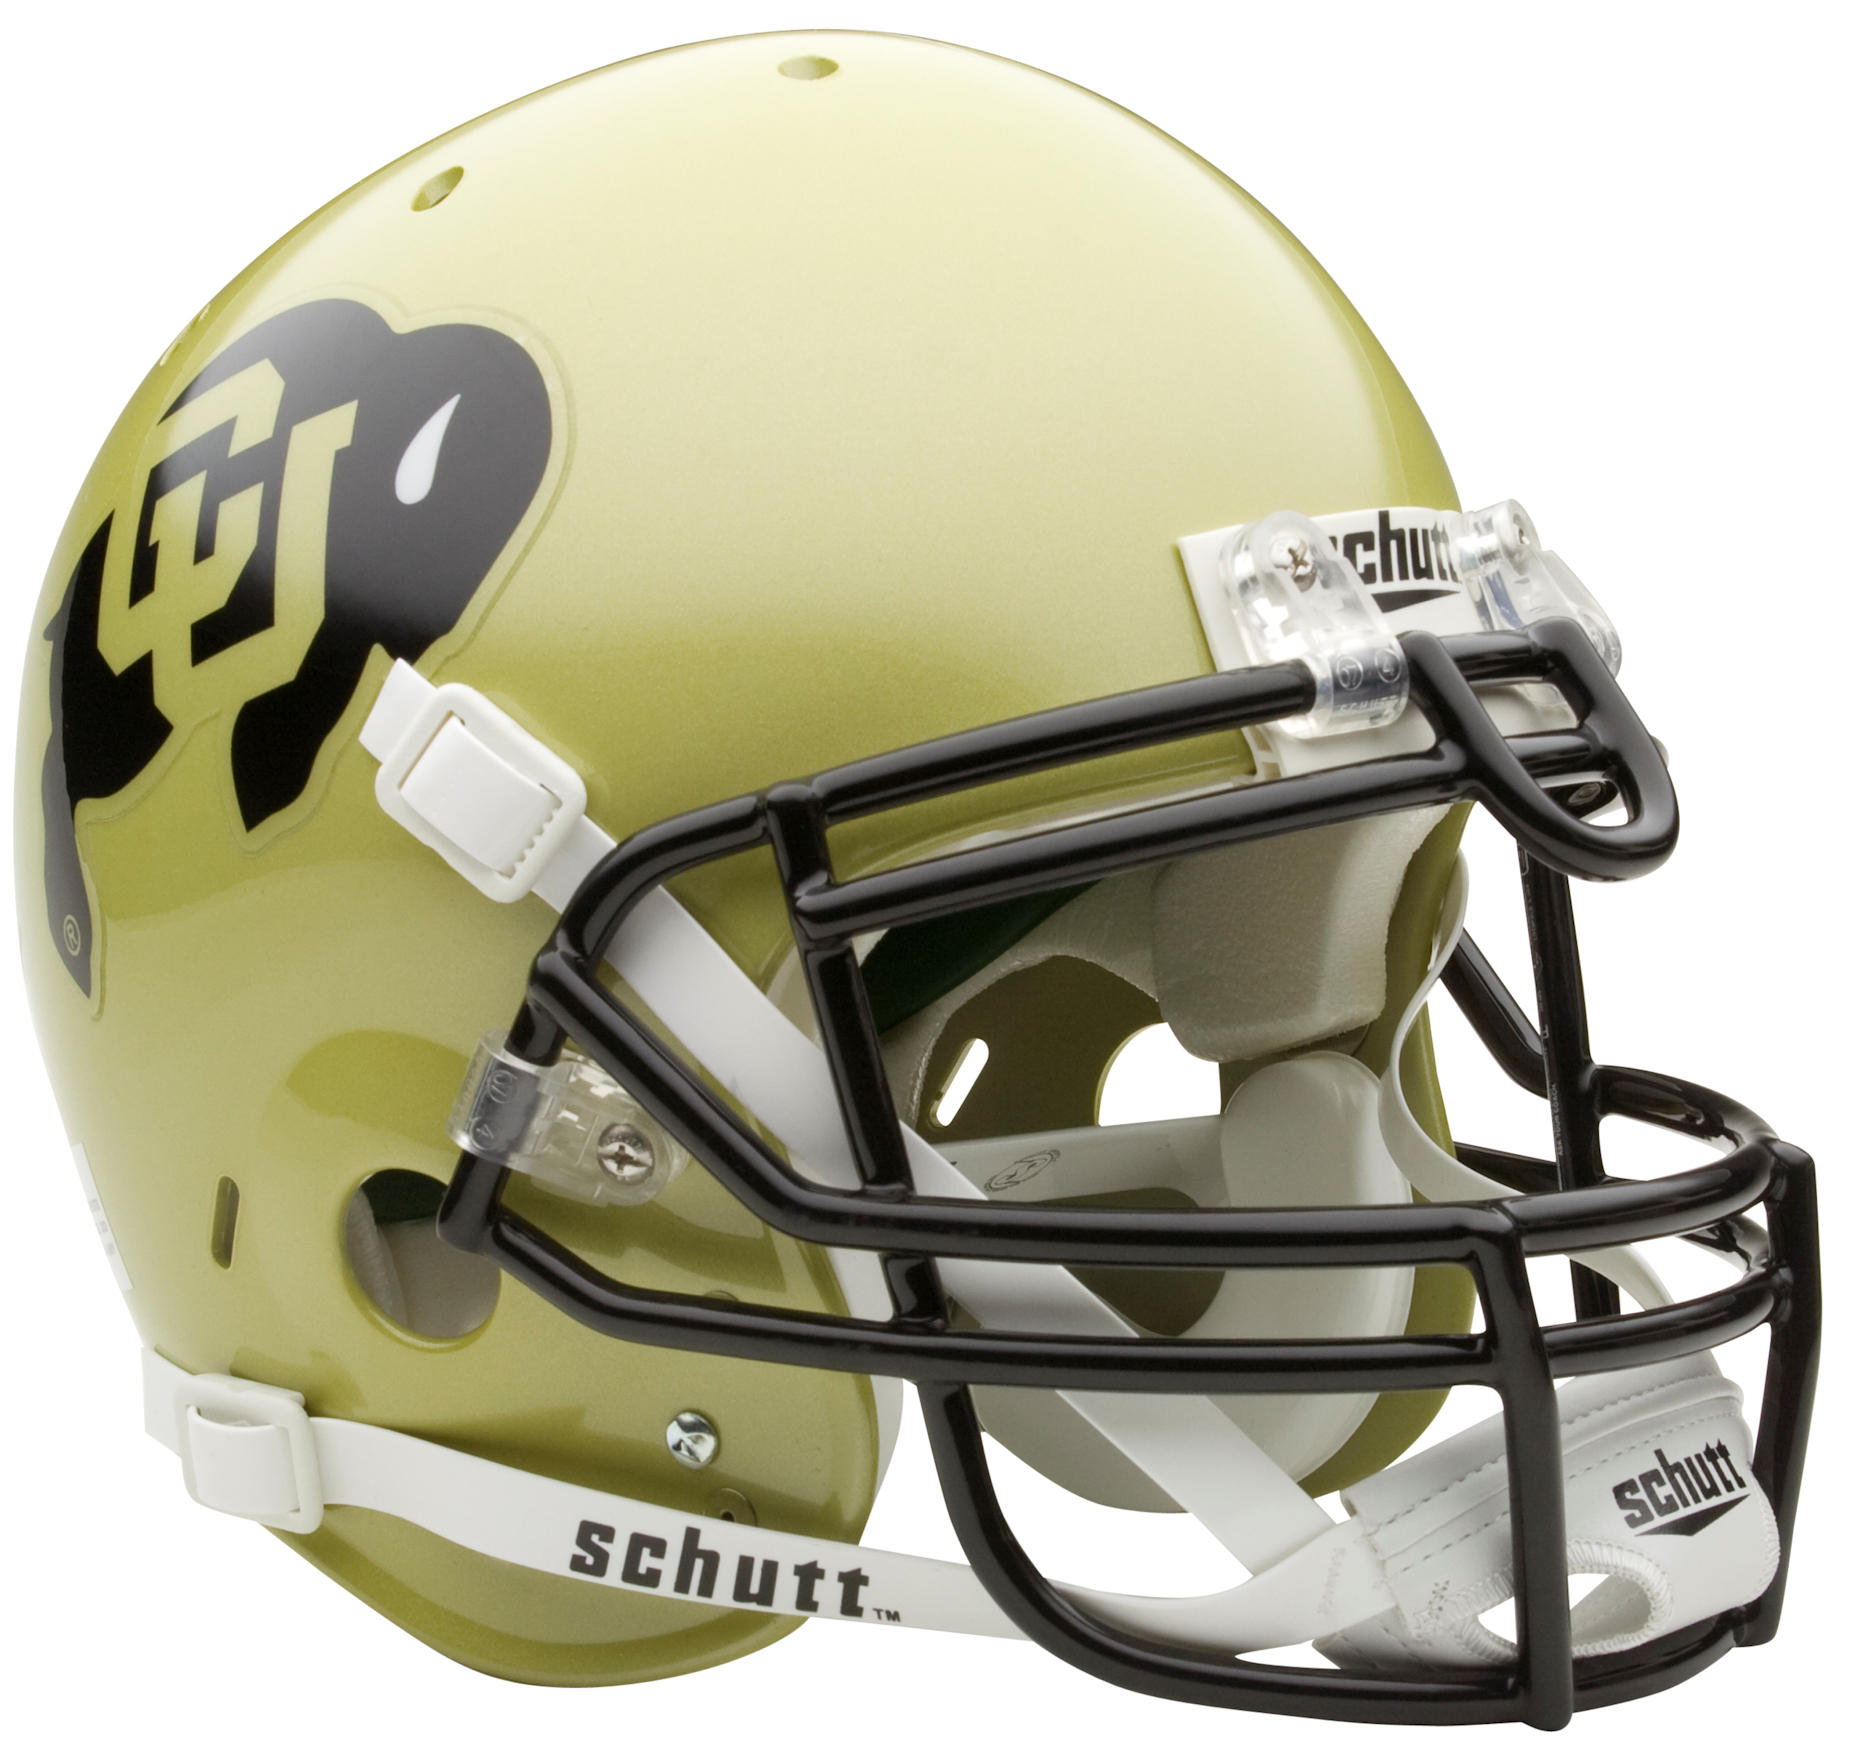 Colorado Buffaloes Authentic College XP Football Helmet Schutt